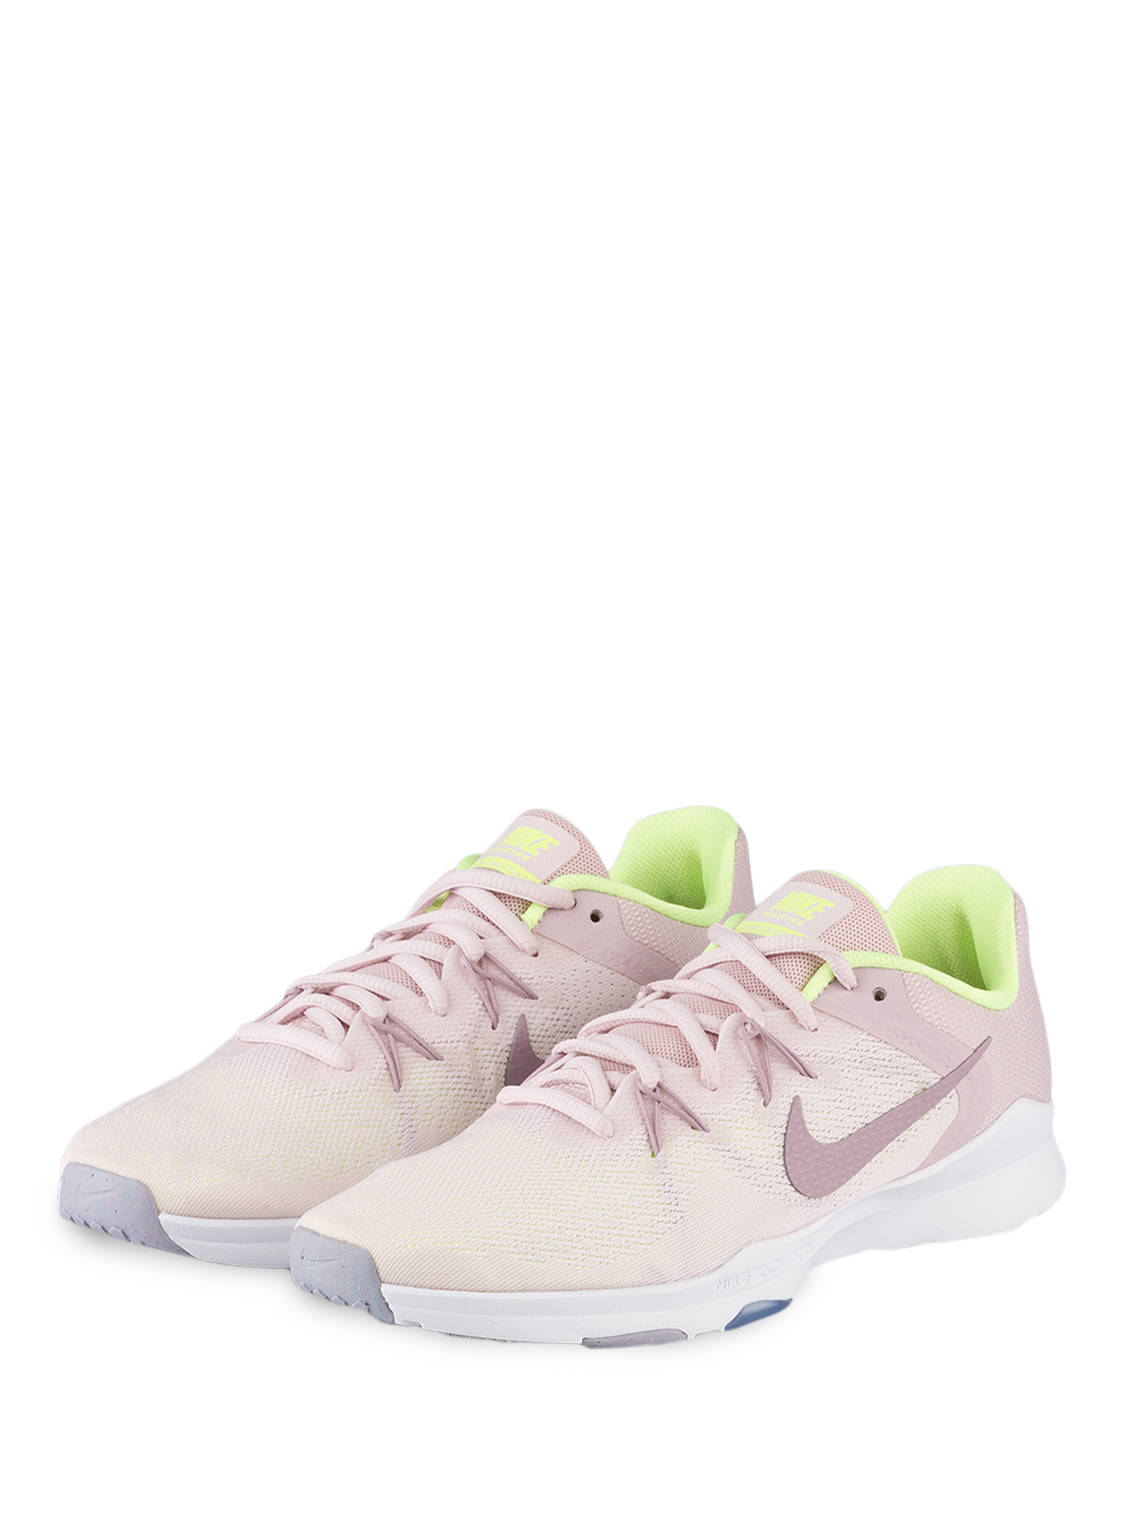 Nike Fitnessschuhe ZOOM CONDITION TR 2